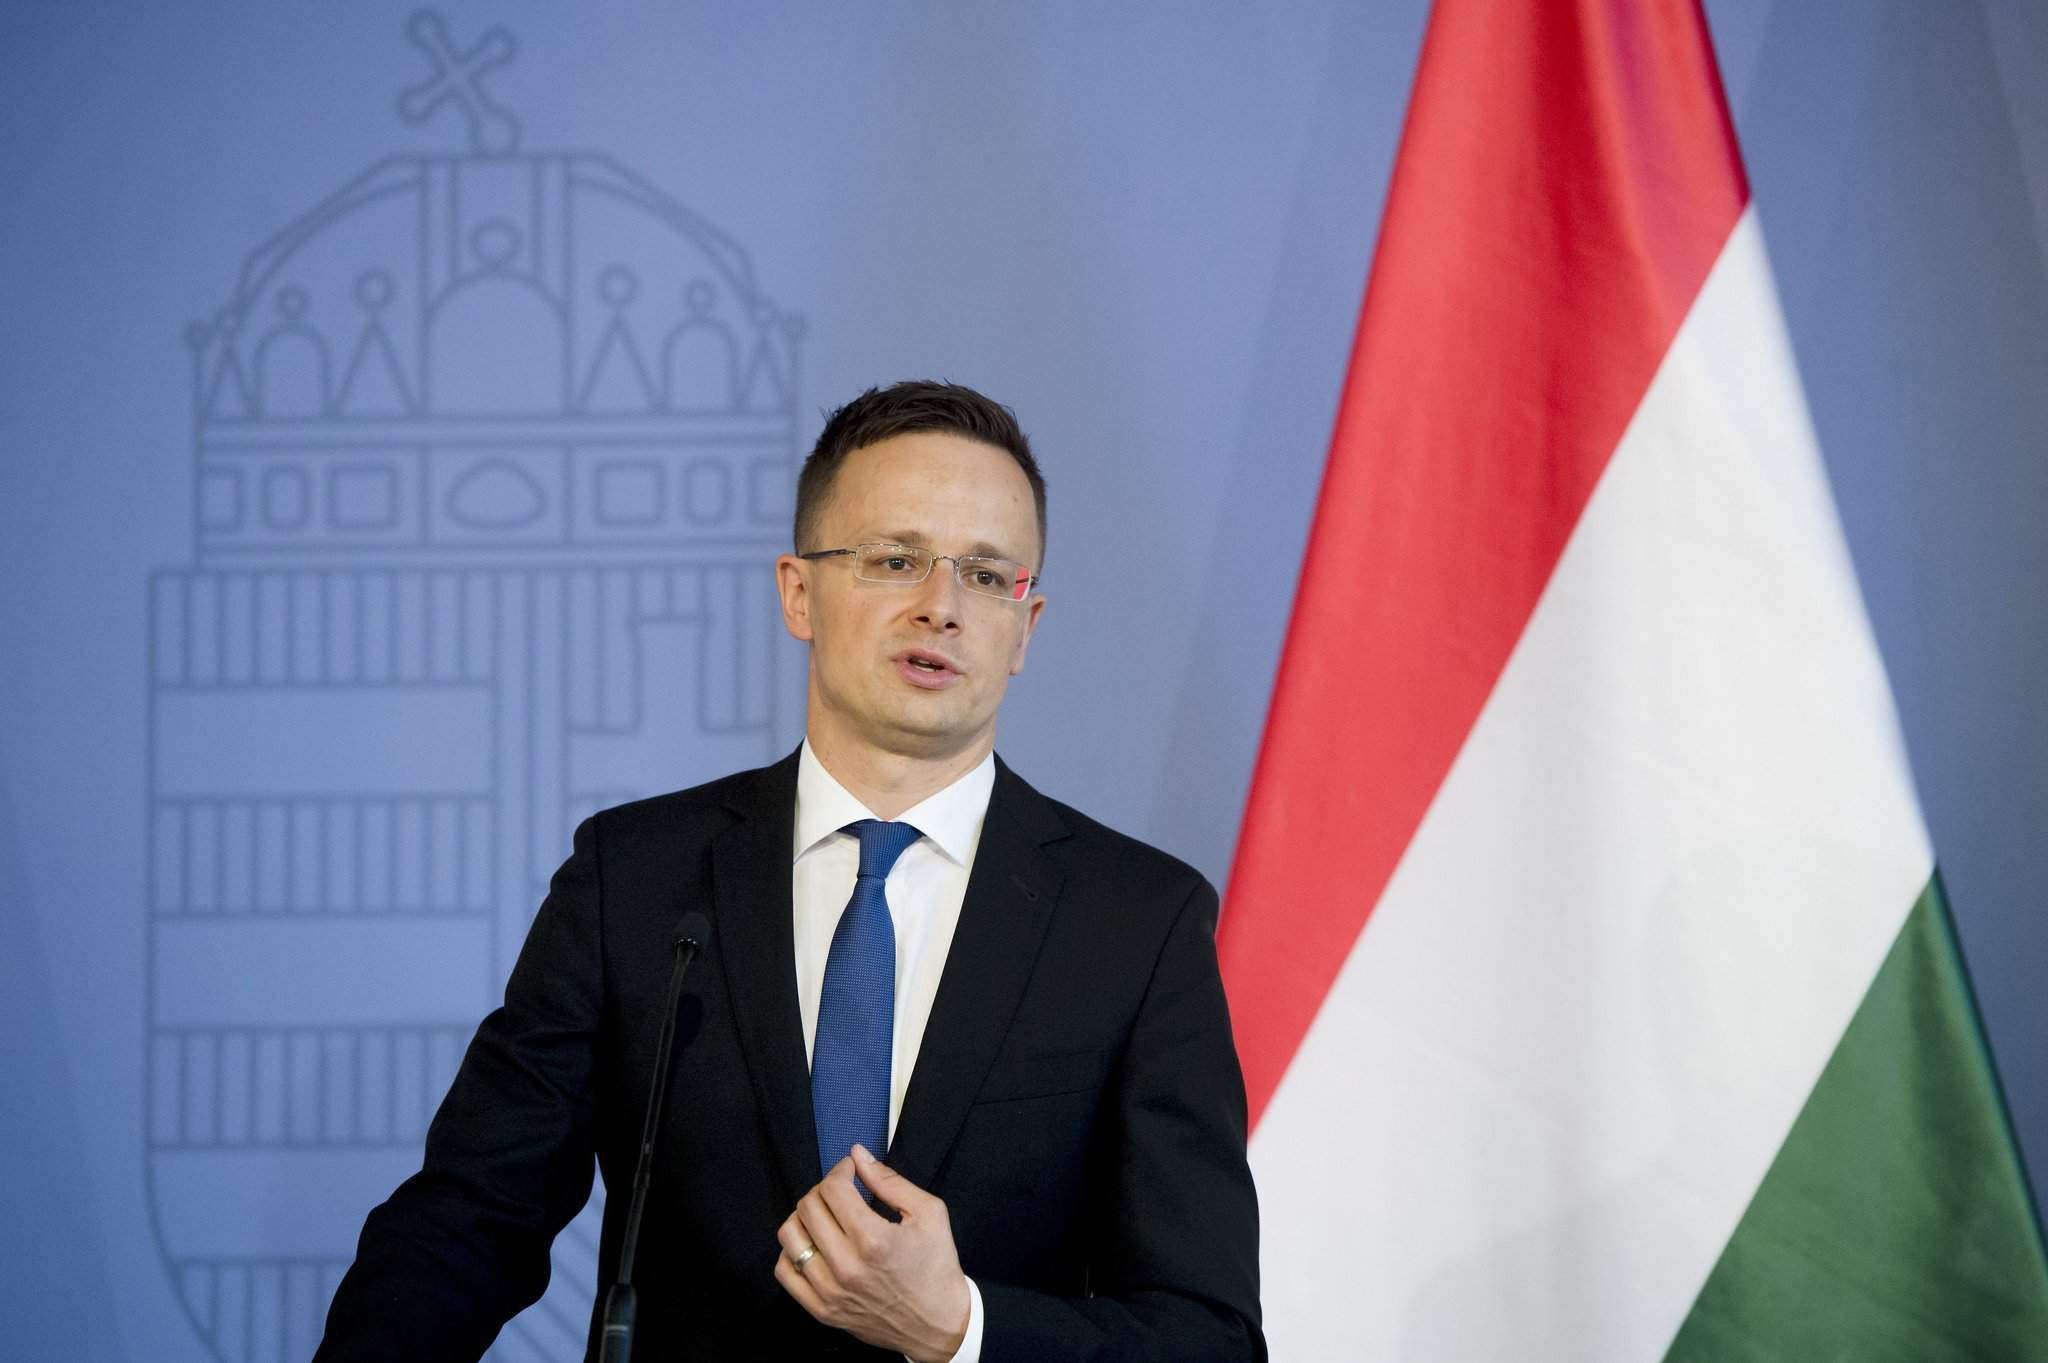 Hungarian foreign minister calls for end to Europe's migration policy